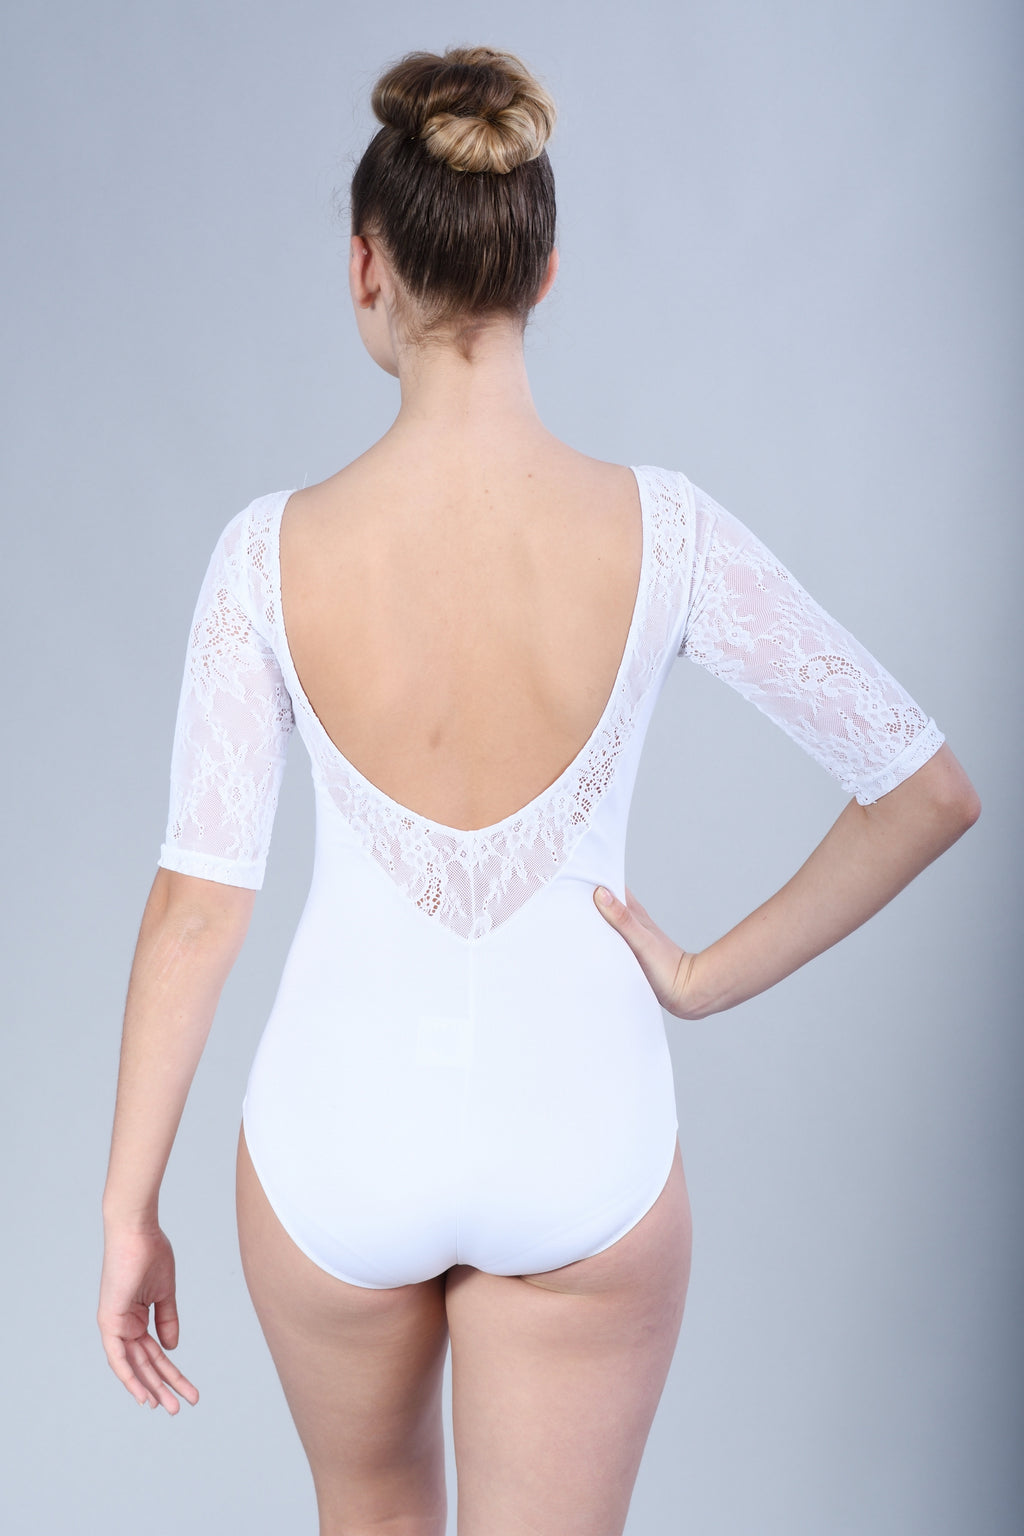 454dfc8193d5 Celeste with Kara Lace Leotard – dancexclusive